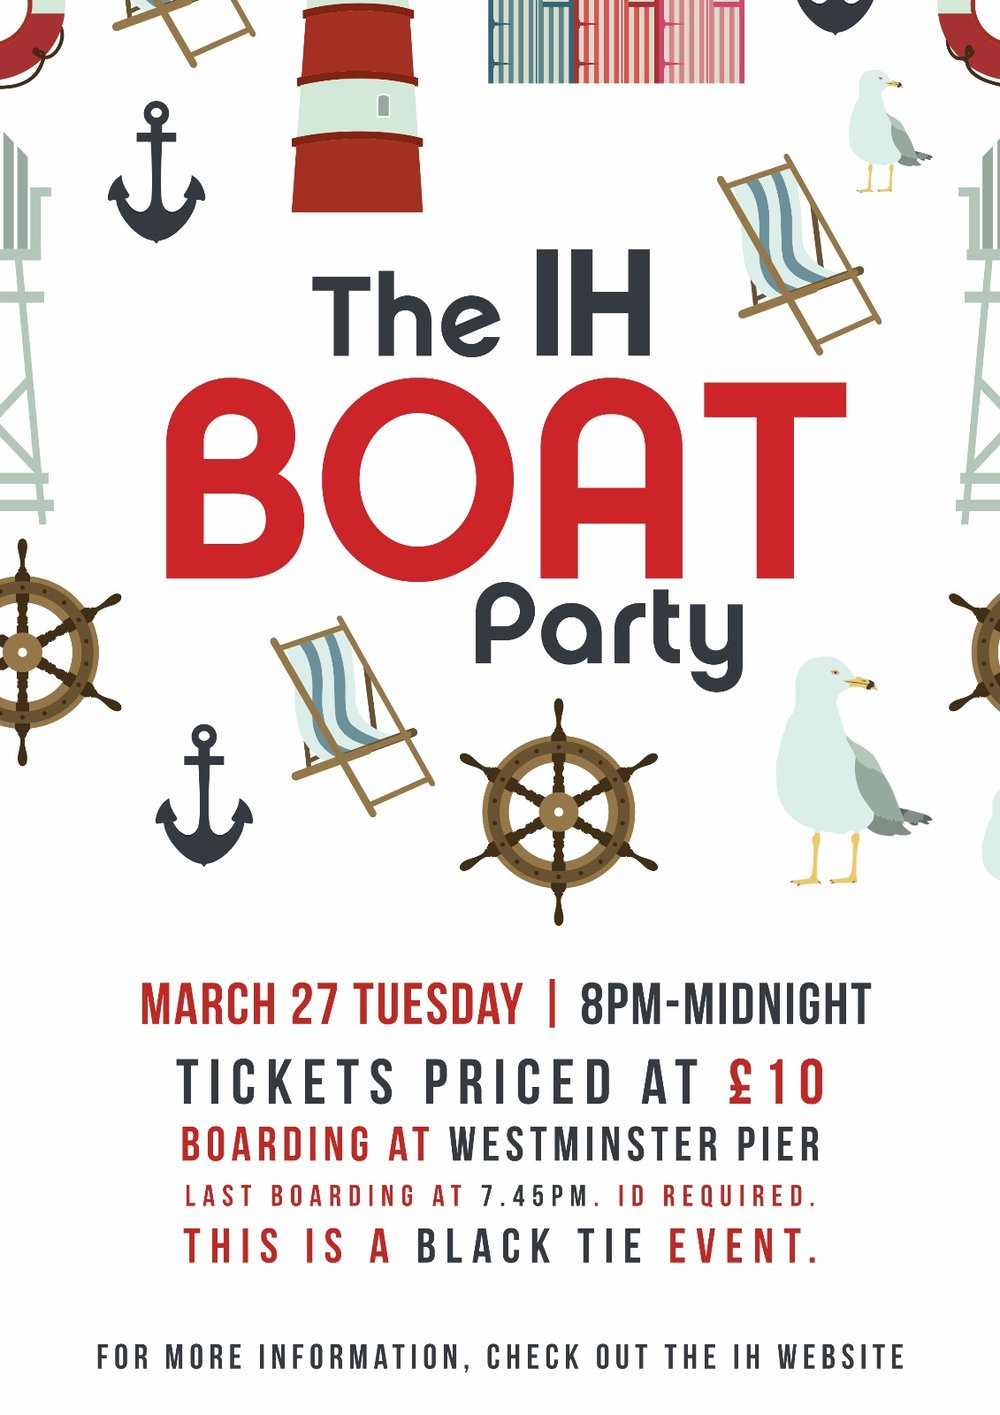 boat party poster.jpeg